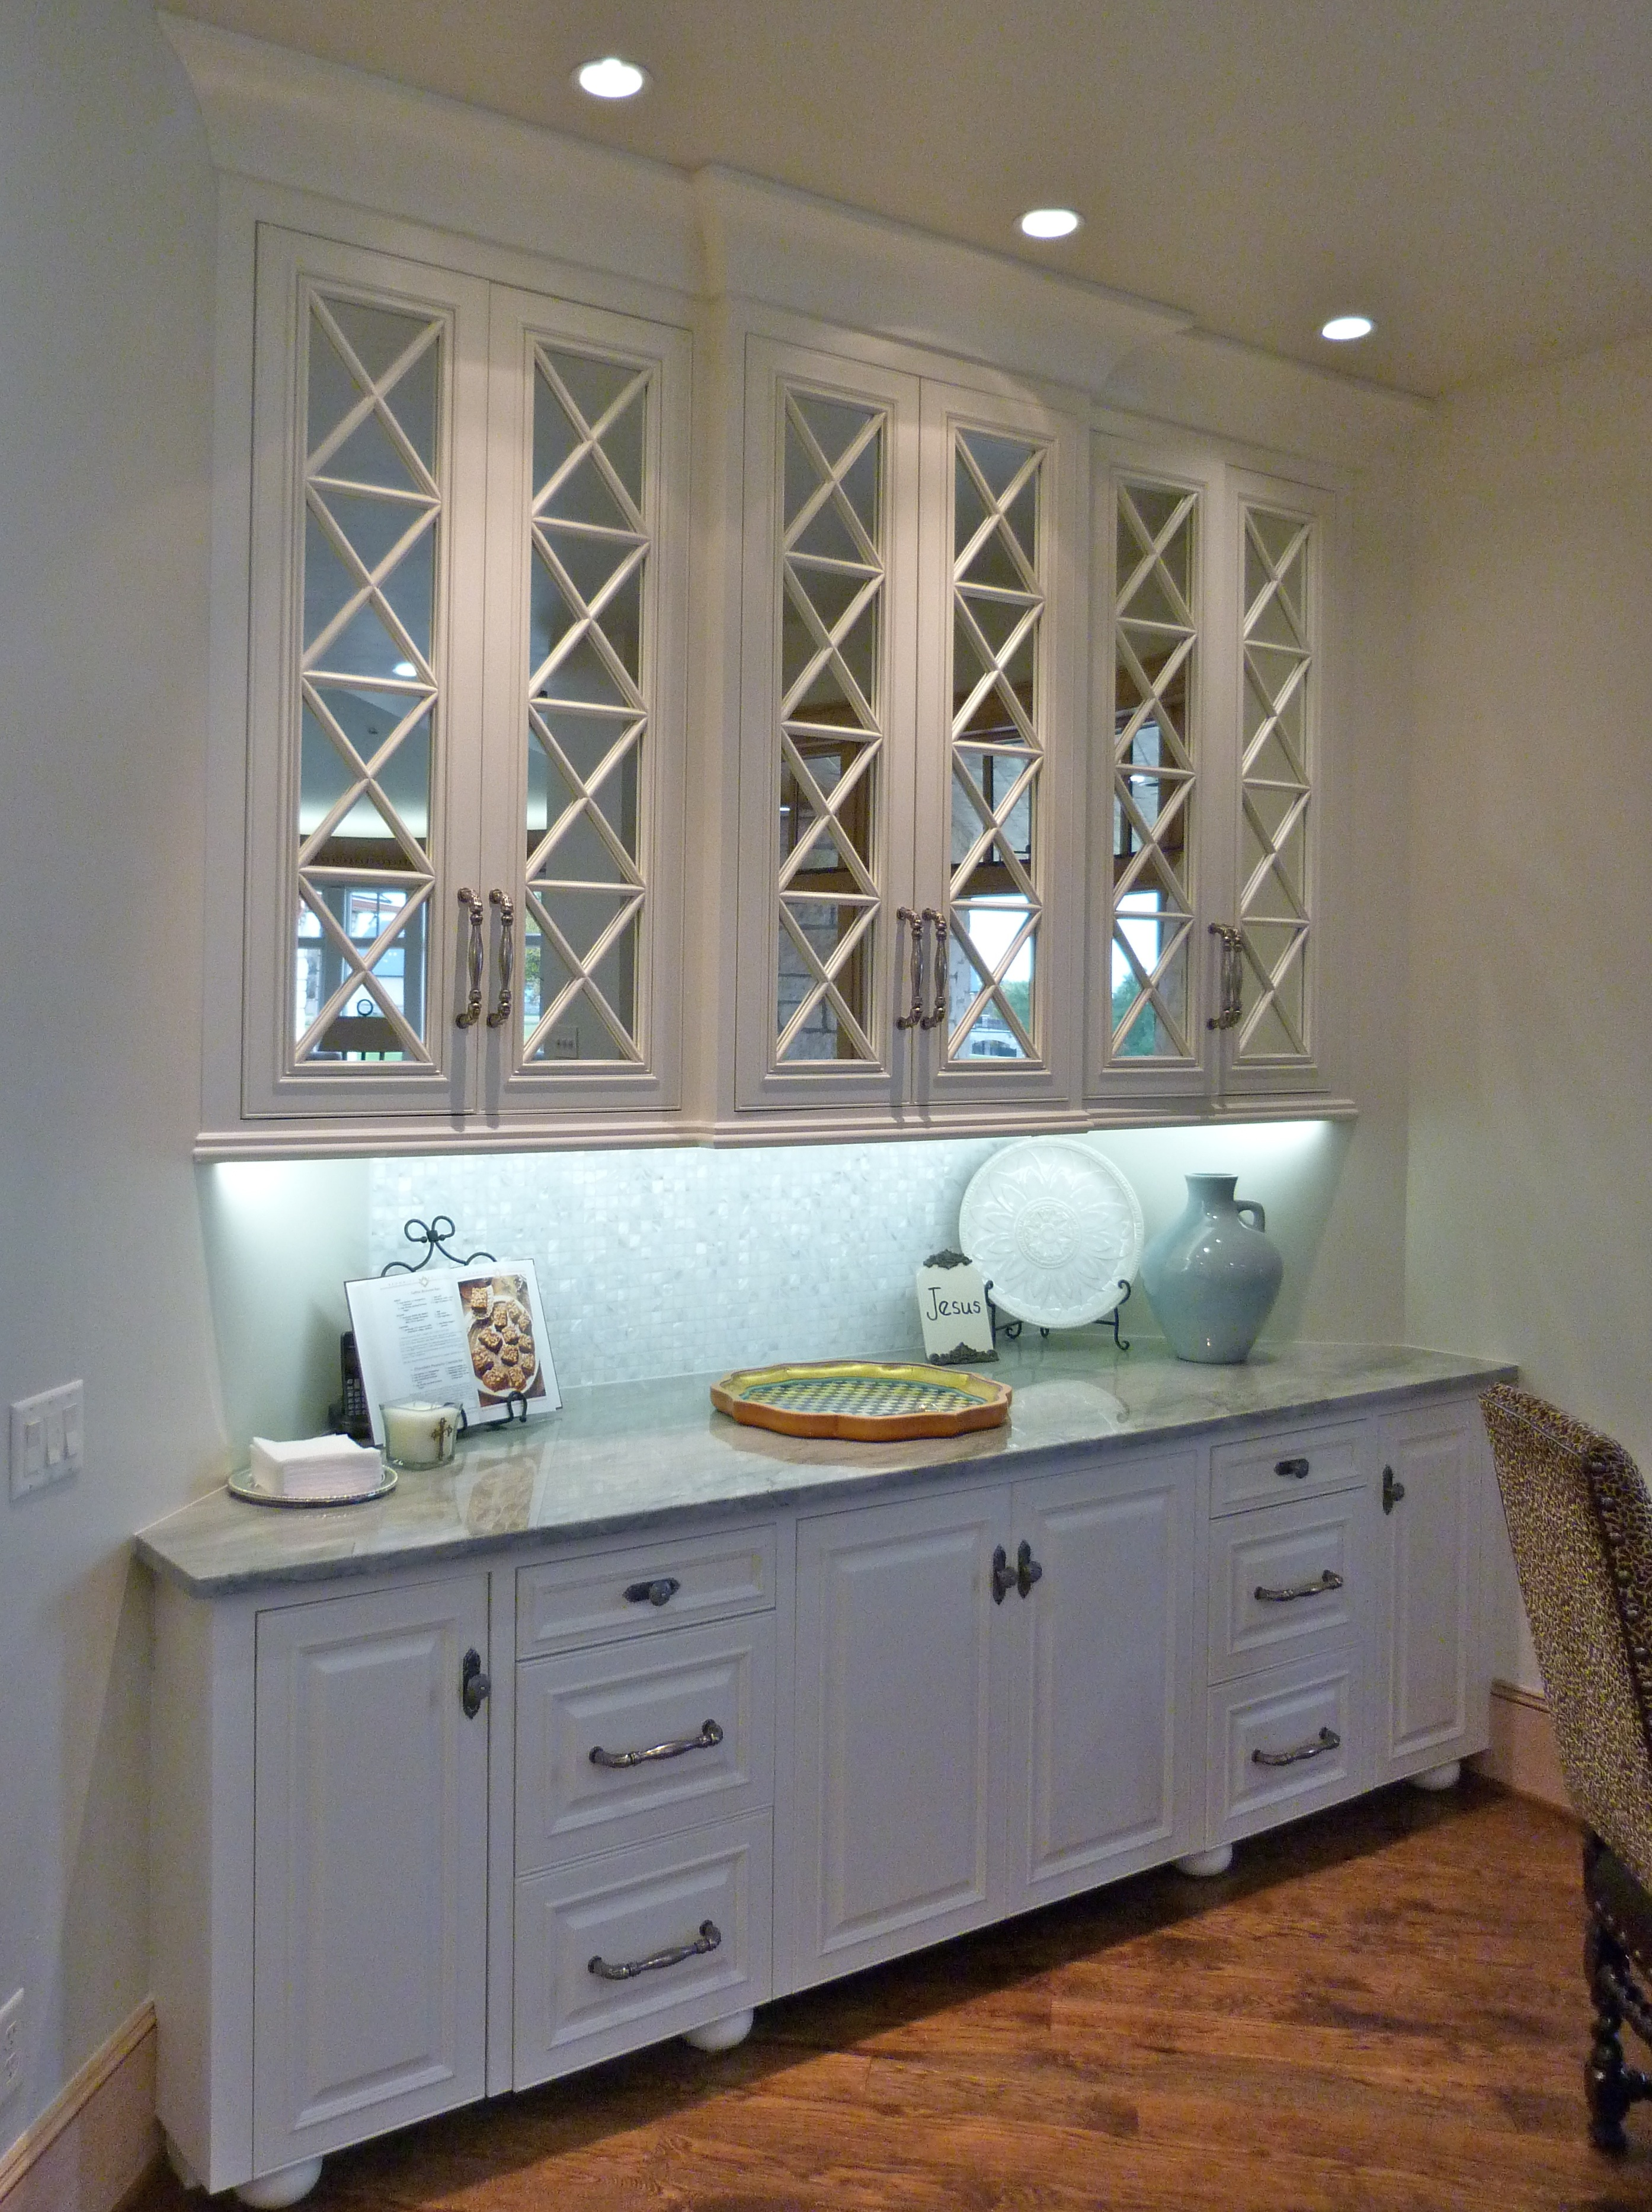 handyman okc kitchen remodel okc Breakfast nook with glass cabinet fronts in Majestic Construction kitchen remodel